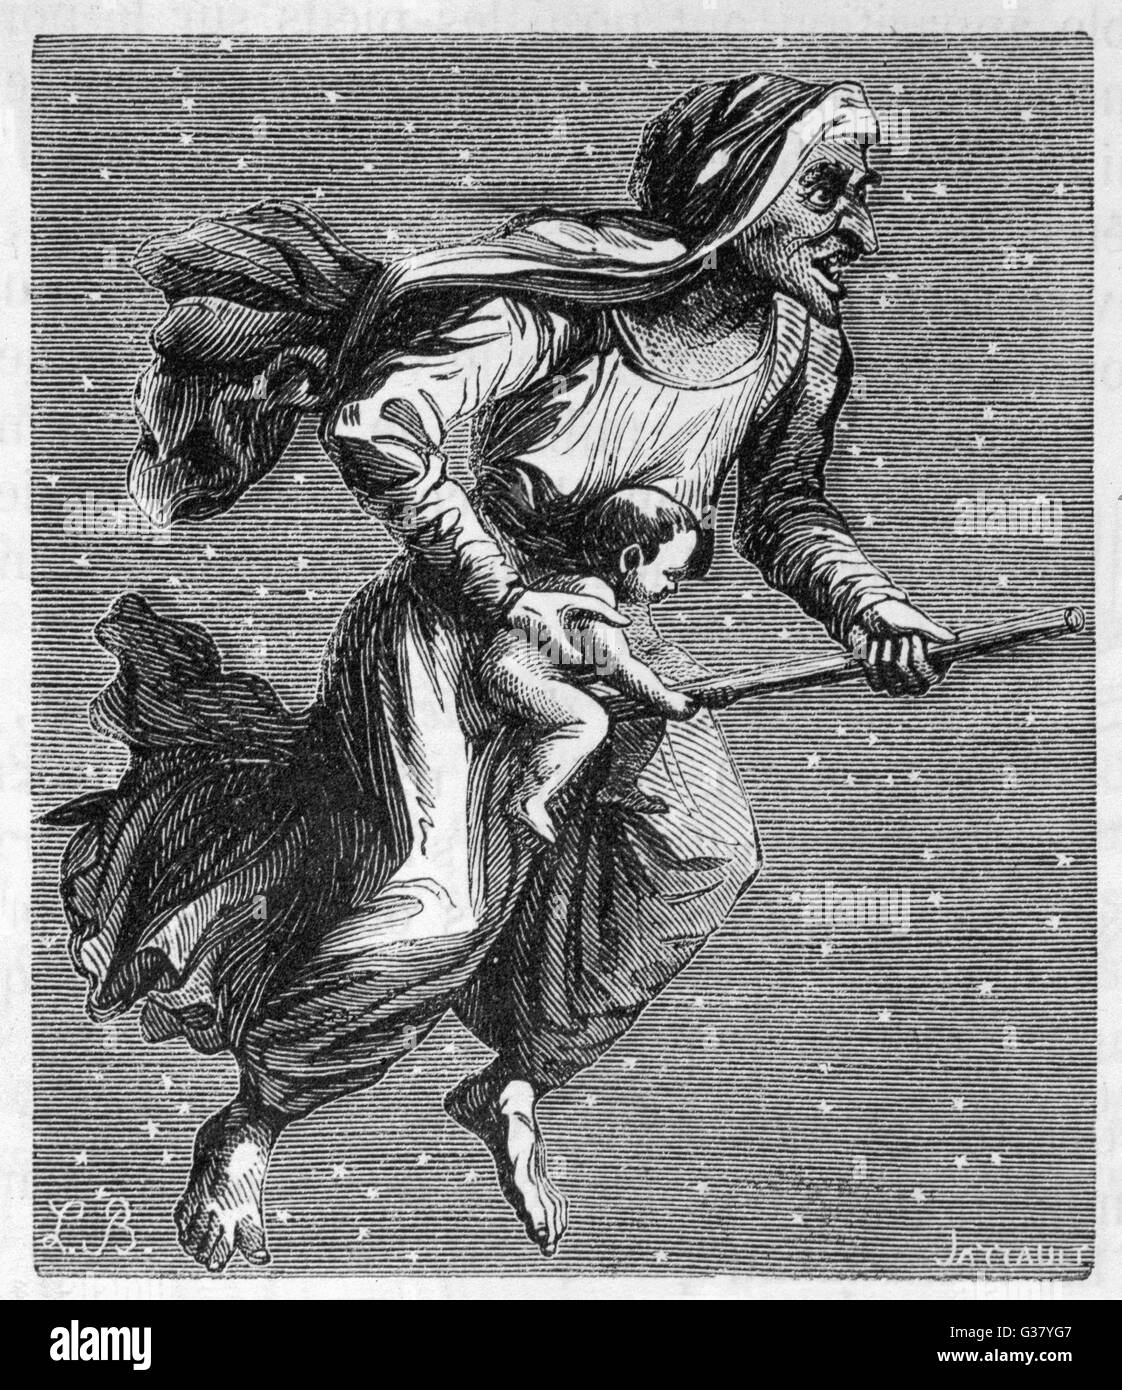 A witch rides through the starlit sky on her broomstick, carrying a baby she has borrowed from its mum. - Stock Image